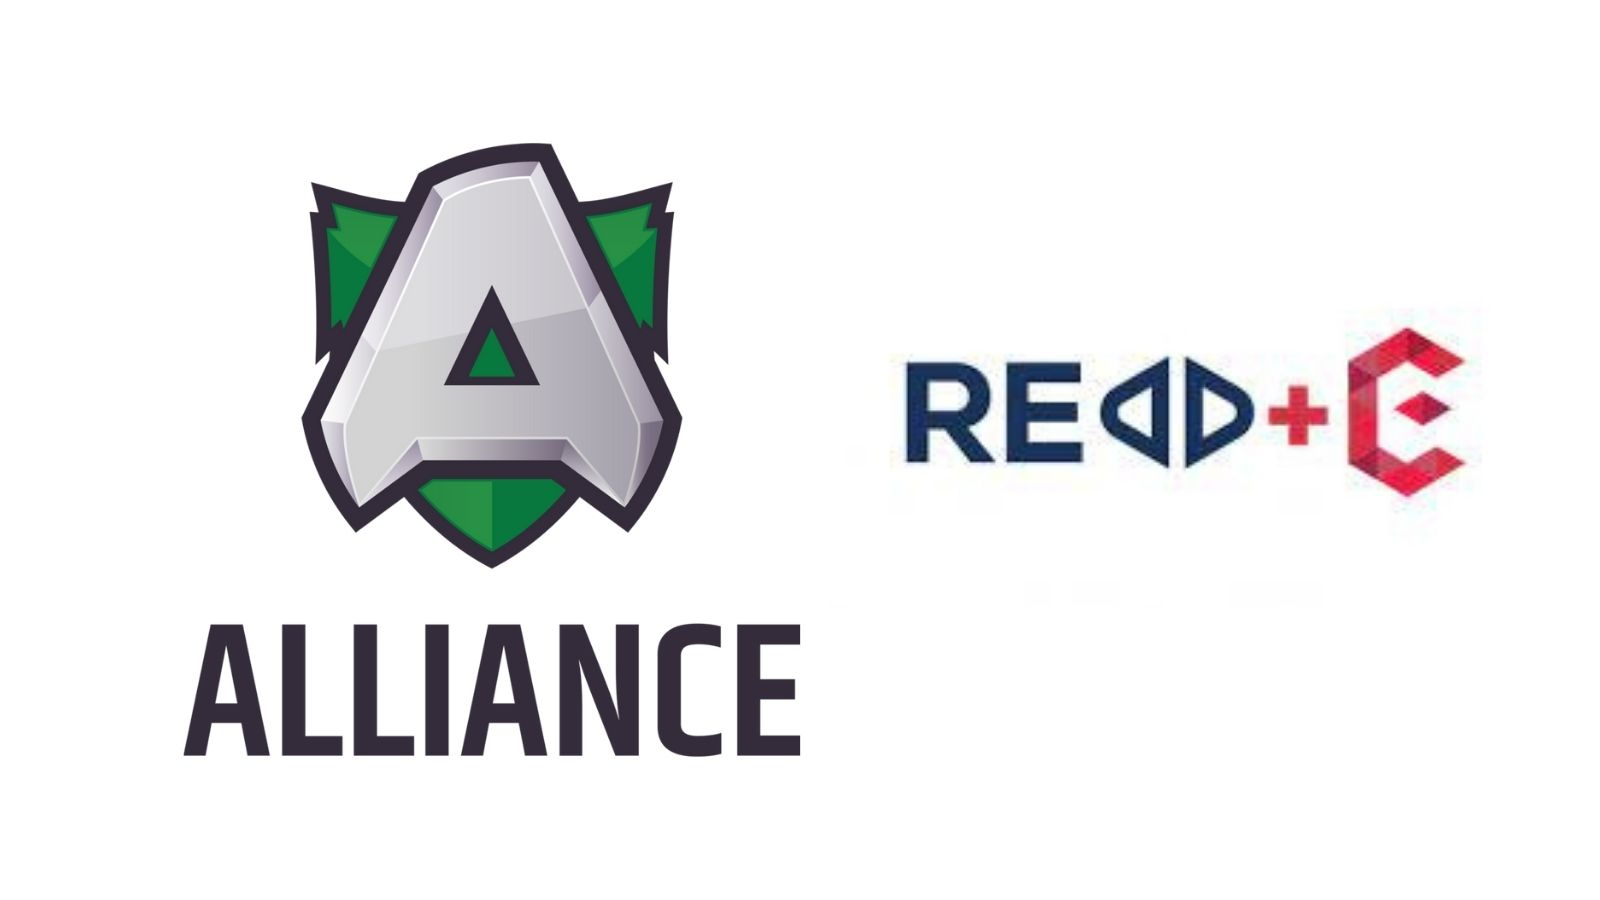 Alliance partner with media agency Redd+E for SEA expansion